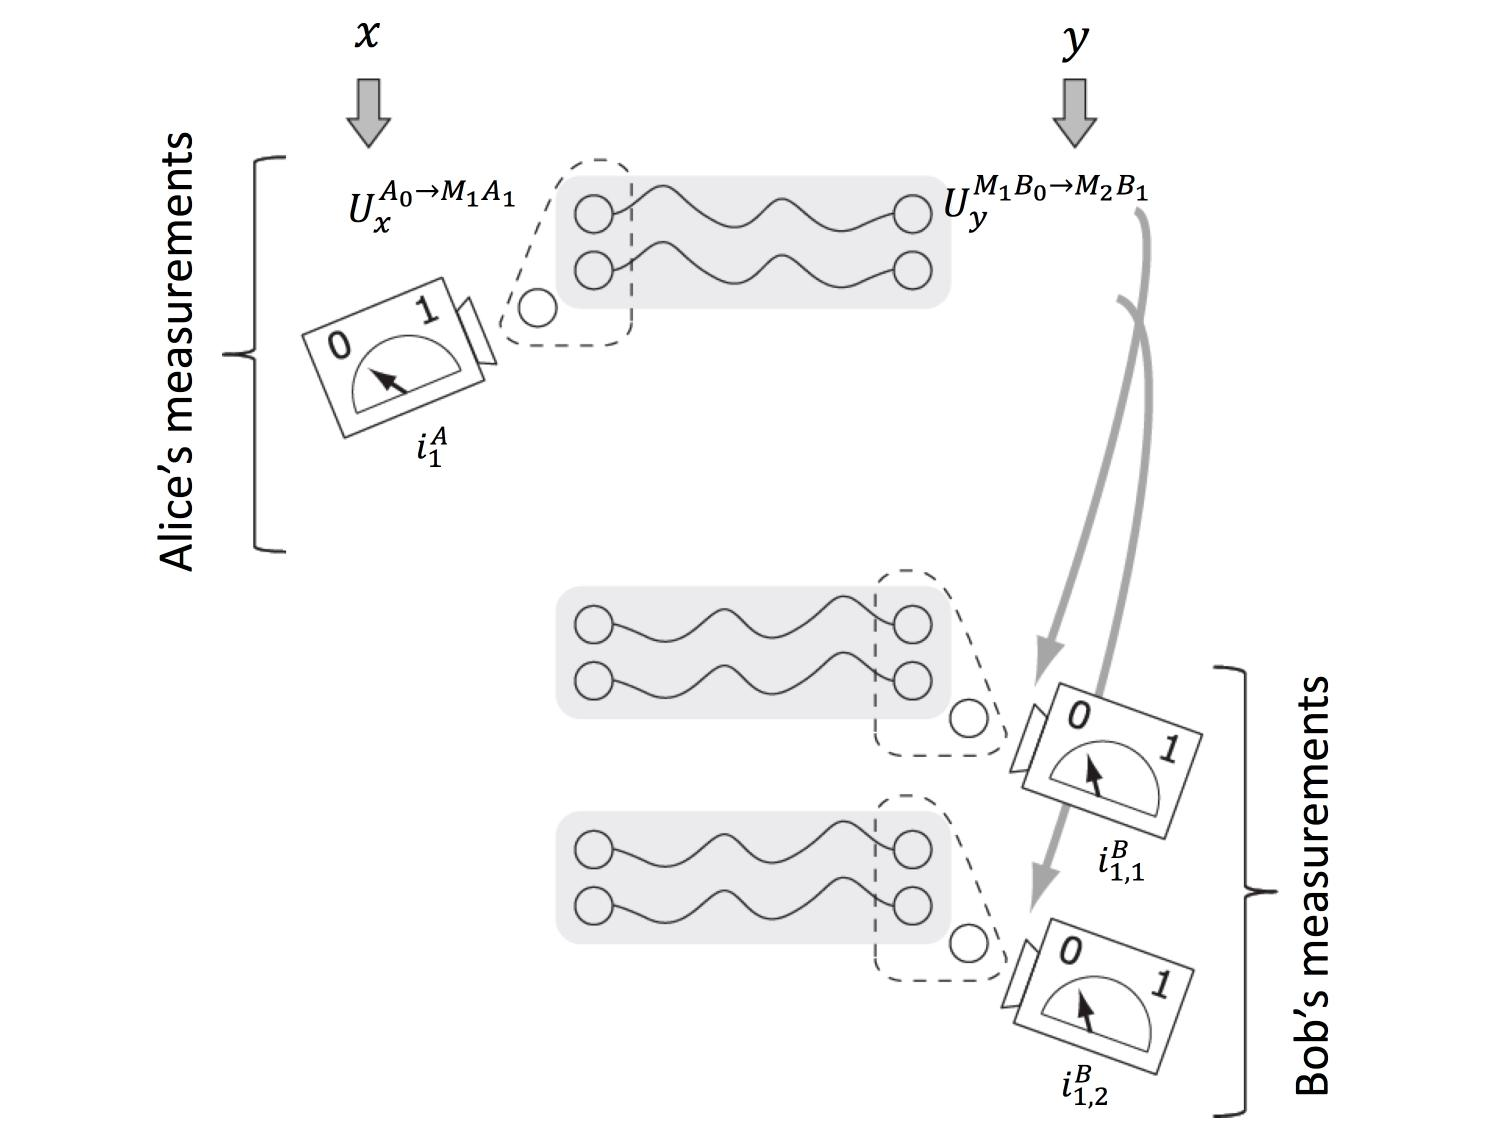 Quantum 1 Classical 0 Bell Nonlocality Universally Confirmed In Circuit Moreover Door Diagram Together With The Structure Of A Single Round Protocol